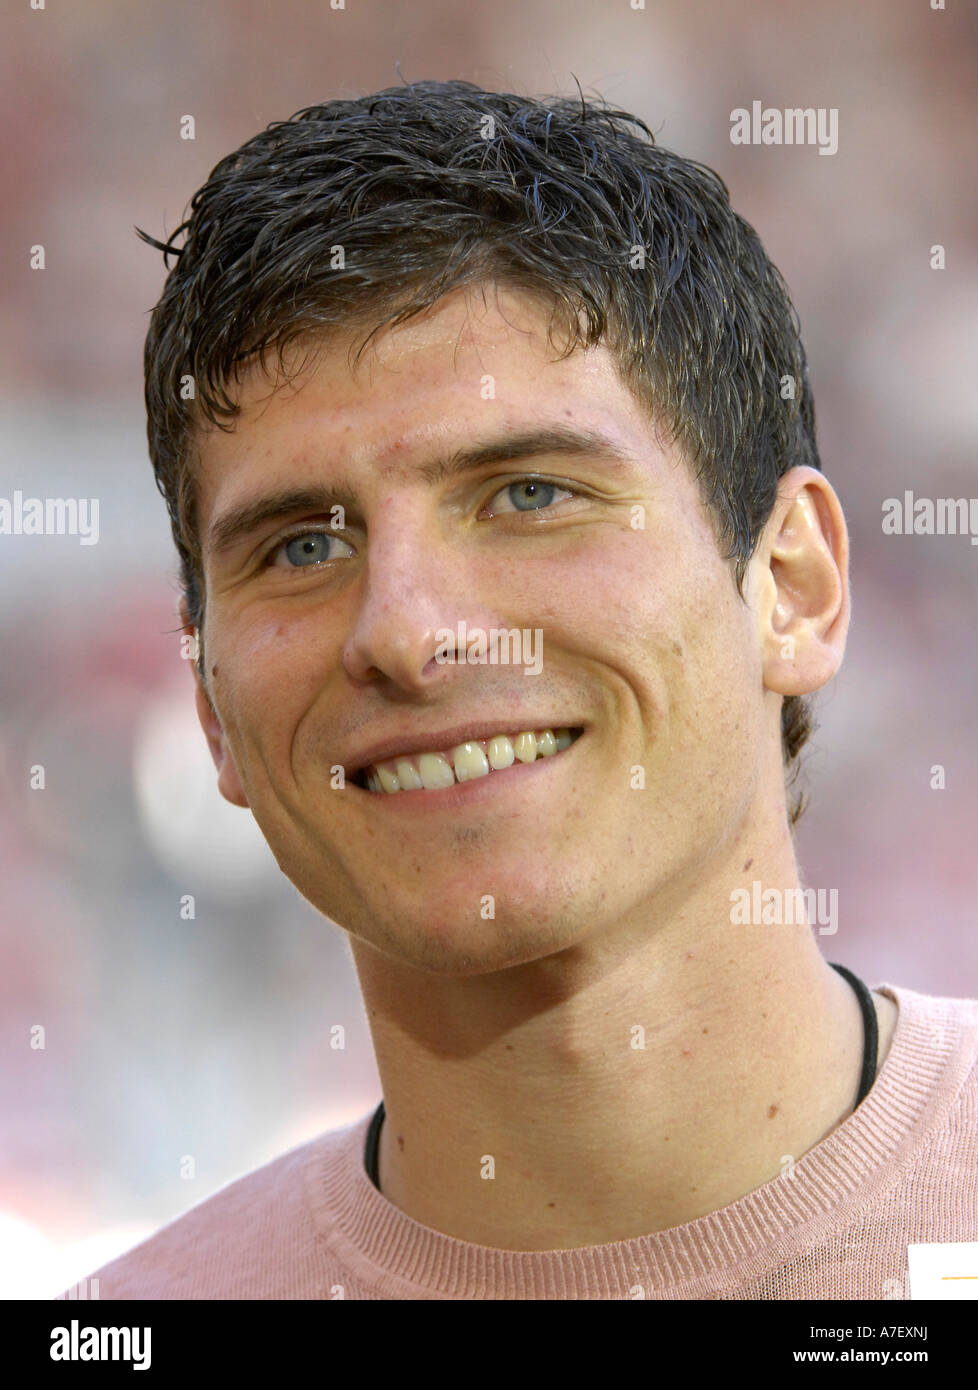 German national team player Mario GOMEZ - Stock Image